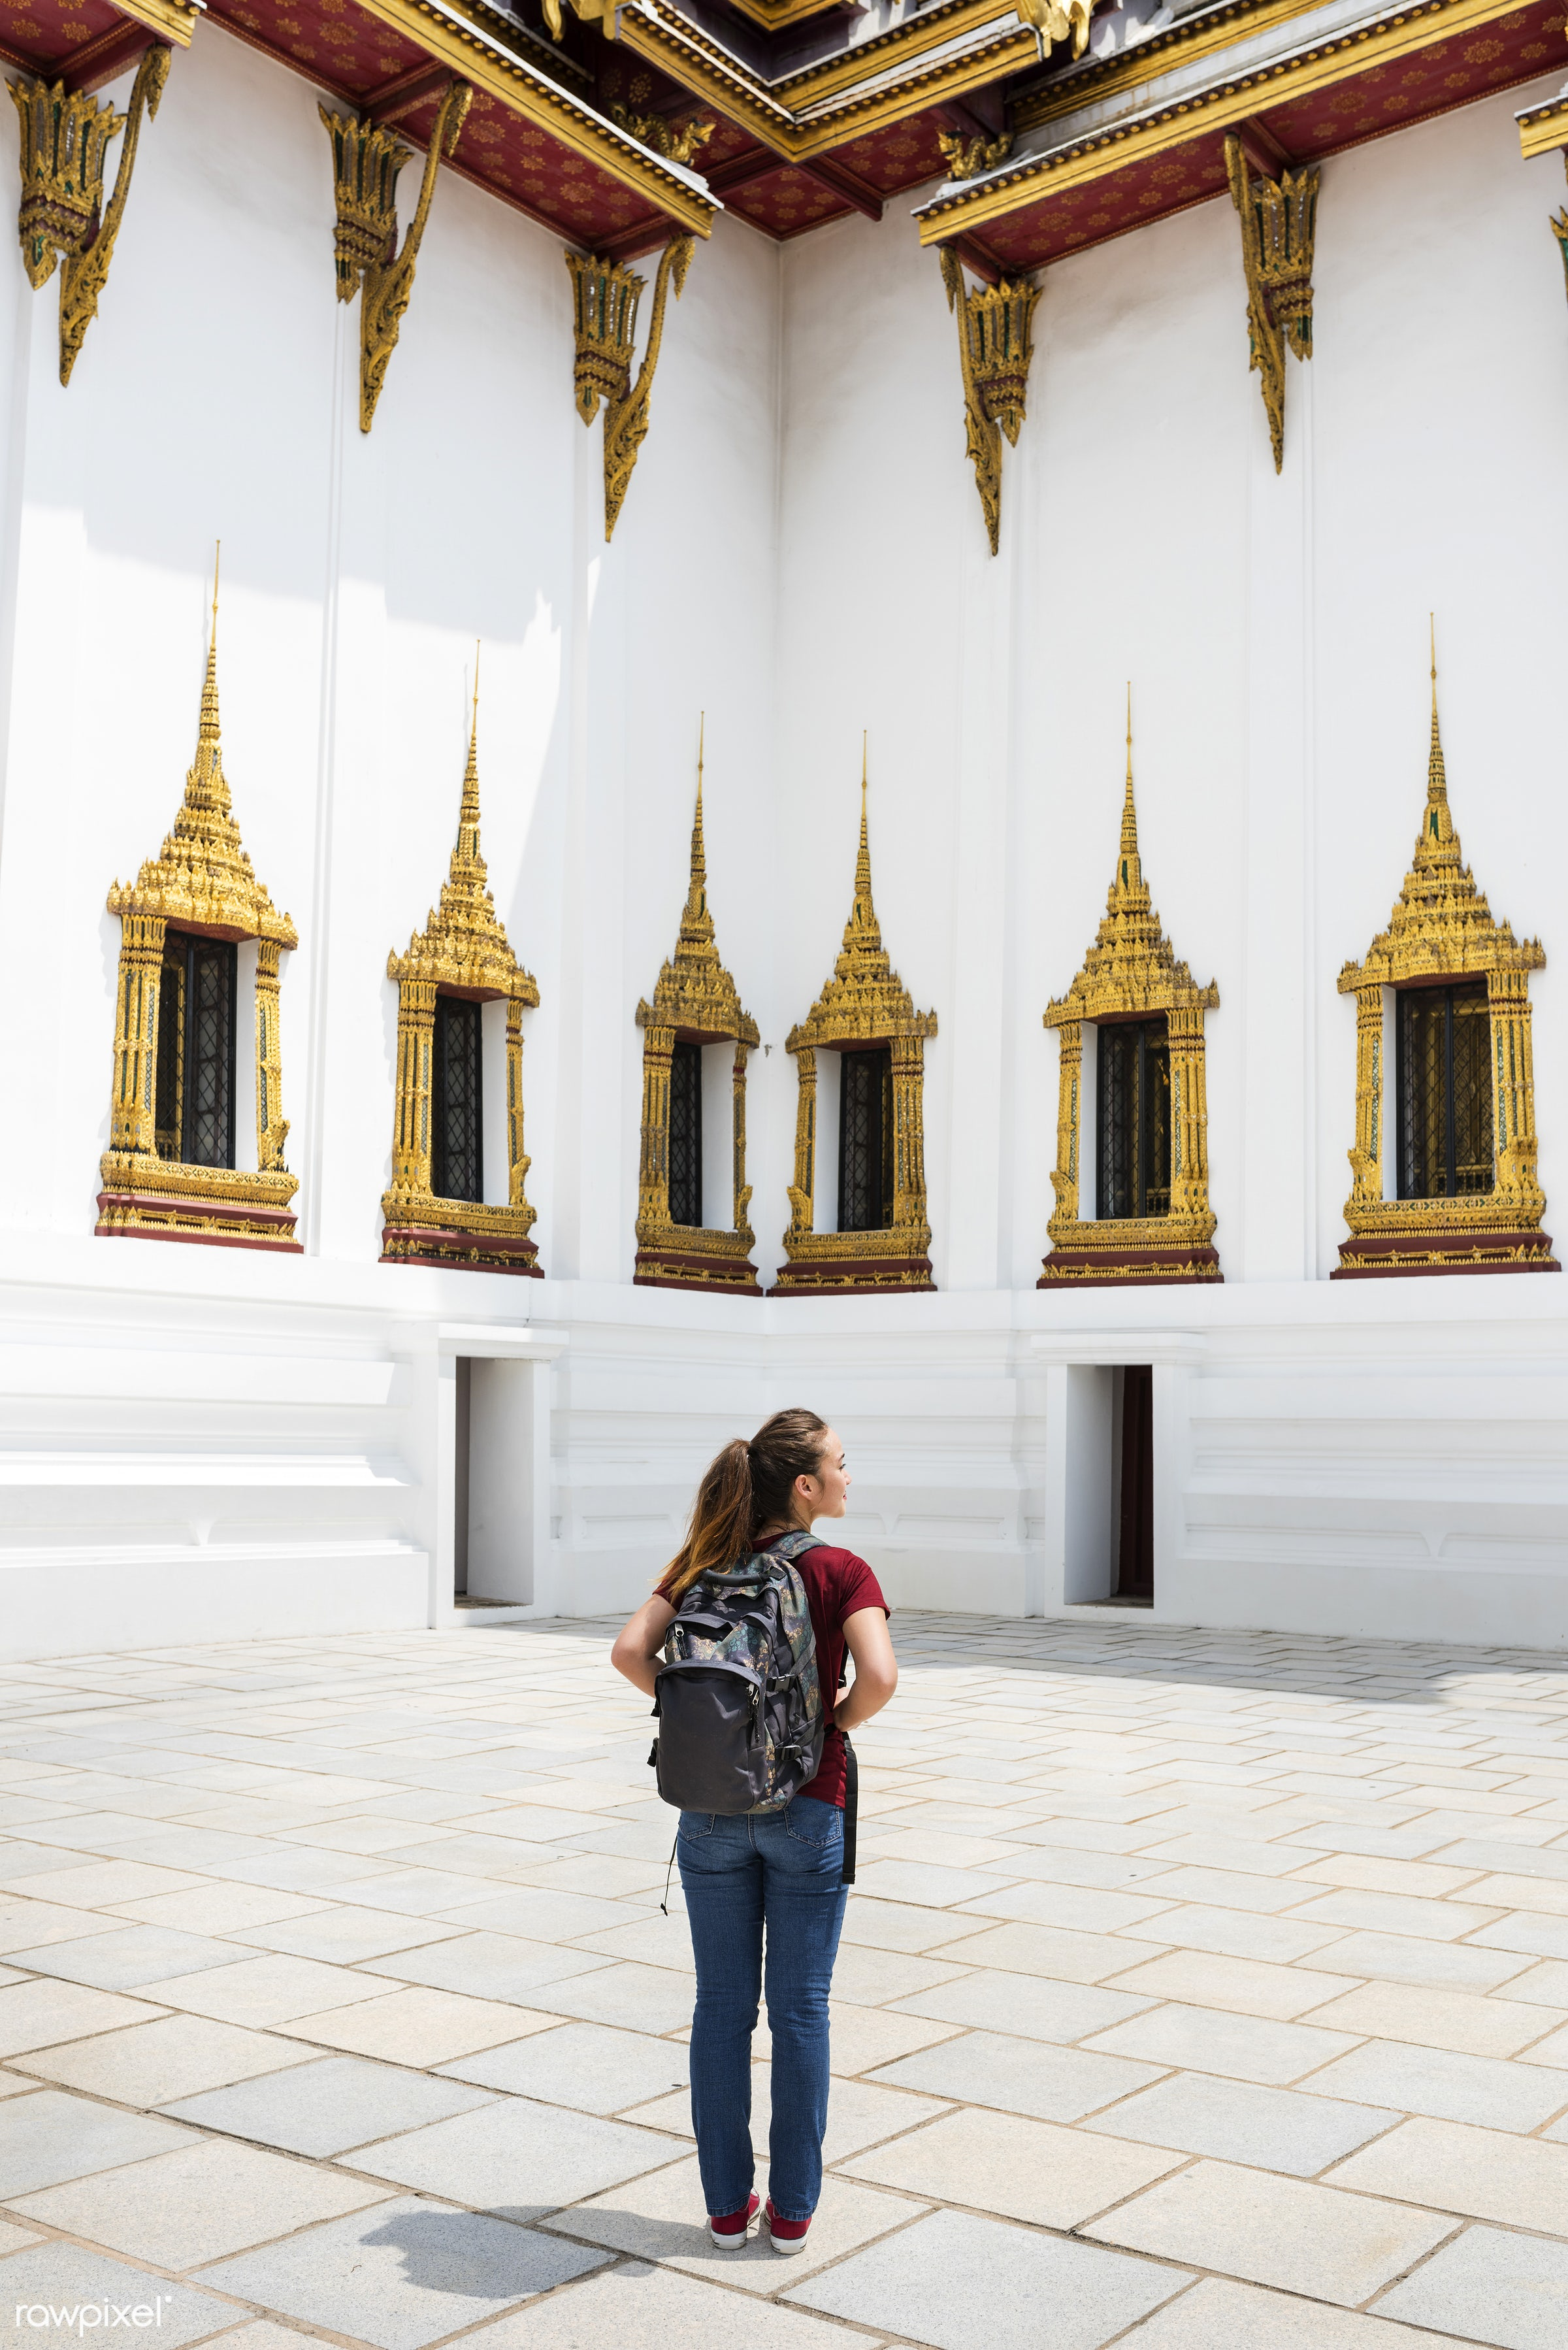 Young woman traveling through Thailand - activity, adventure, ancient, architecture, asia, bangkok, buddha, buddhism,...